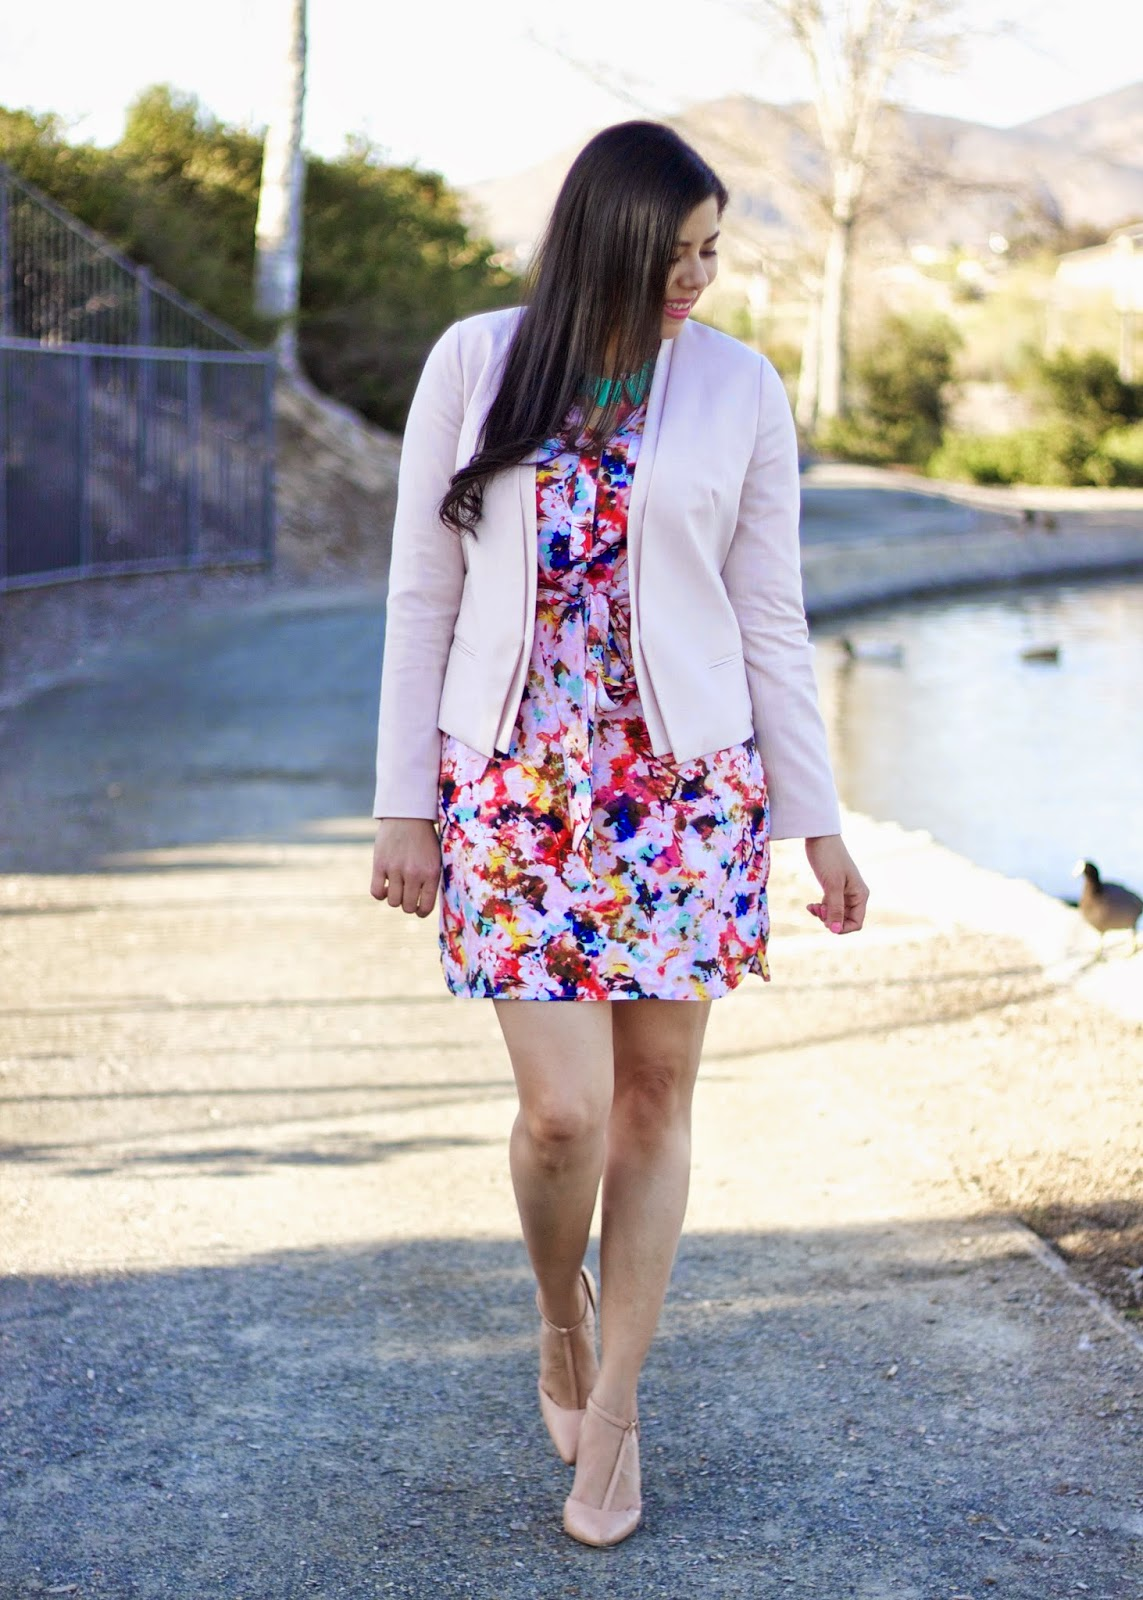 Sleeve floral print dress, pops of teal, pop of color in an outfit, perfect outfit for spring